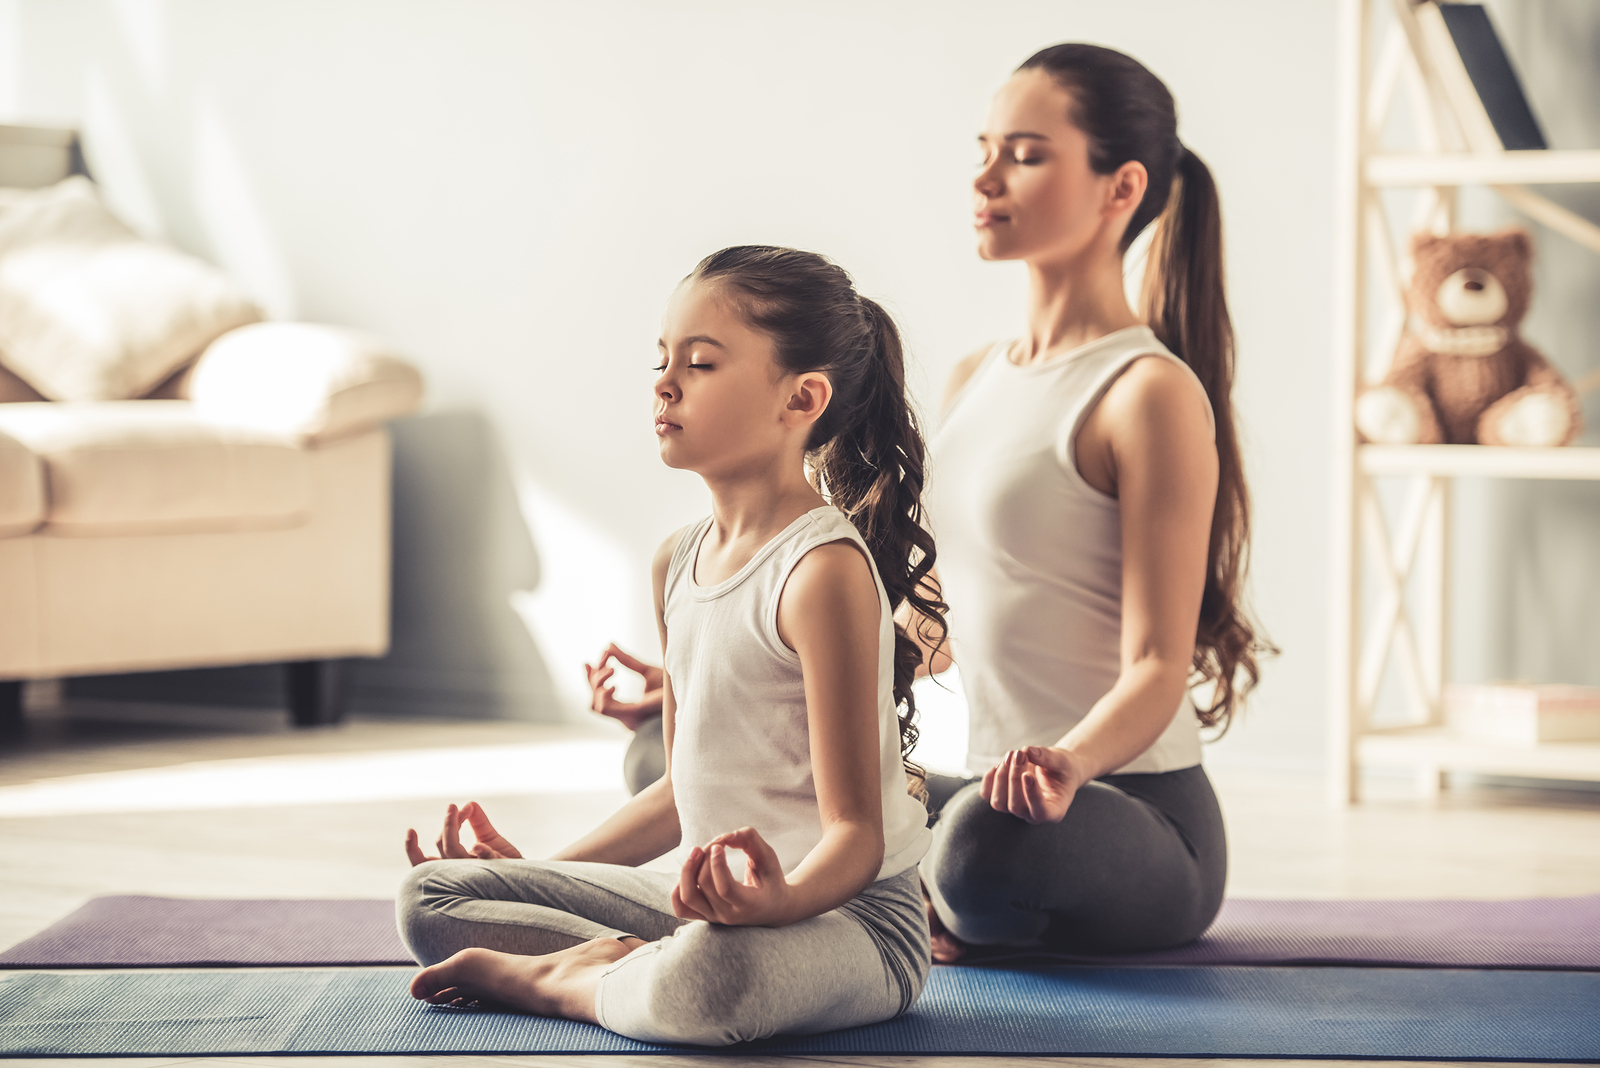 Lately, I've started noticing more and more yoga classes for kids, either with or without parents.